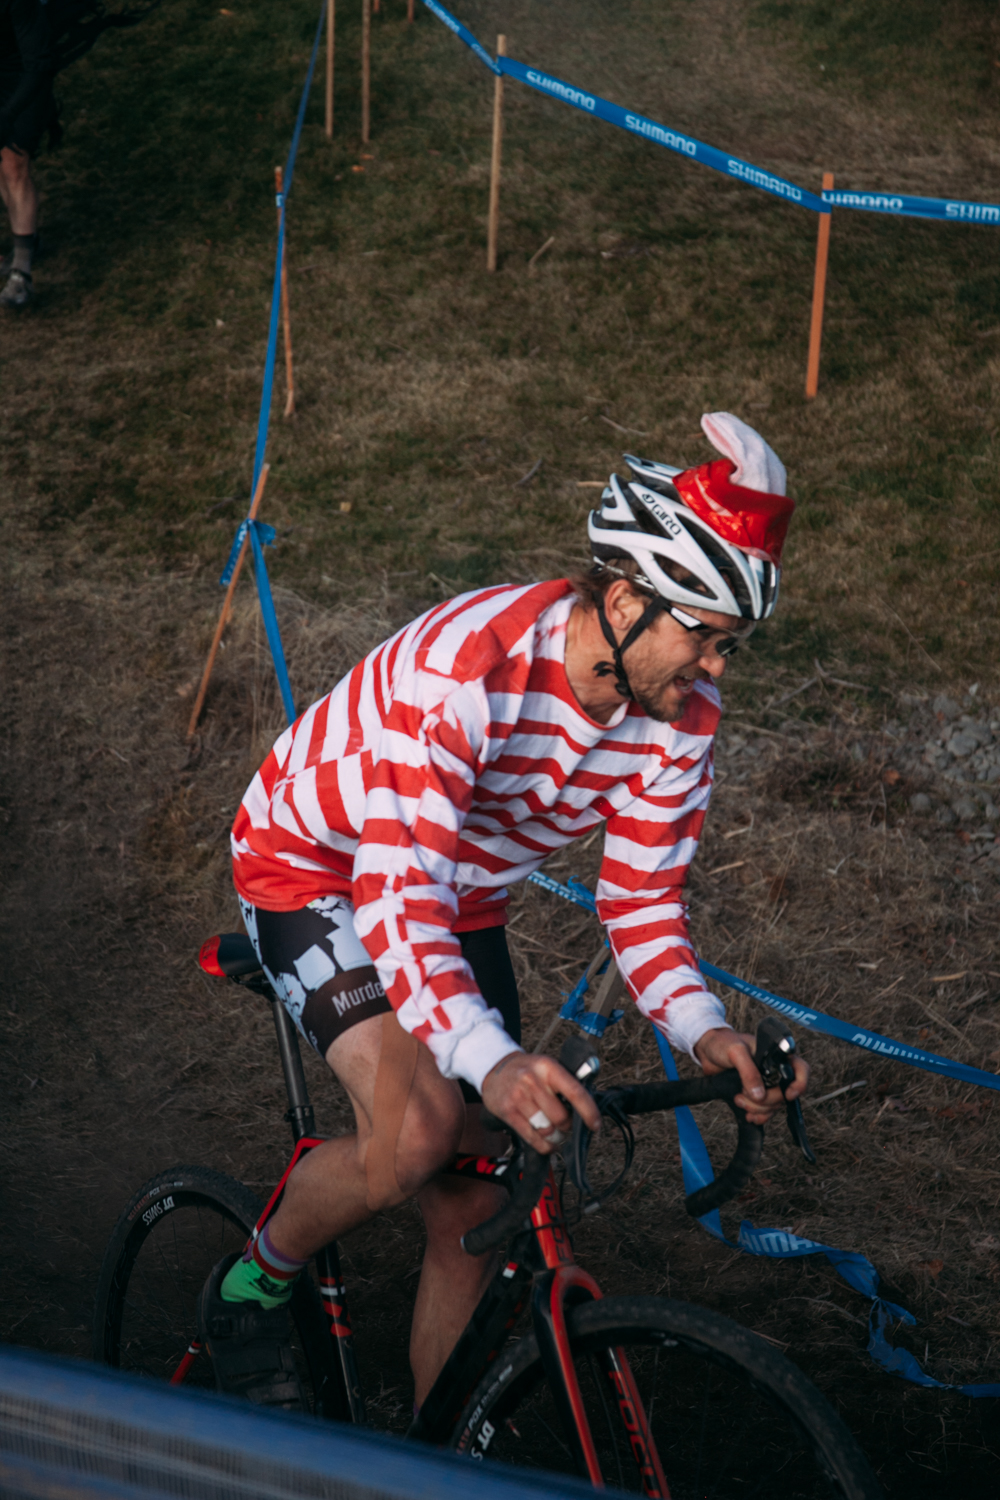 Cyclocross18_CCCX-Bend-Day2-323-fransencomesalive.jpg